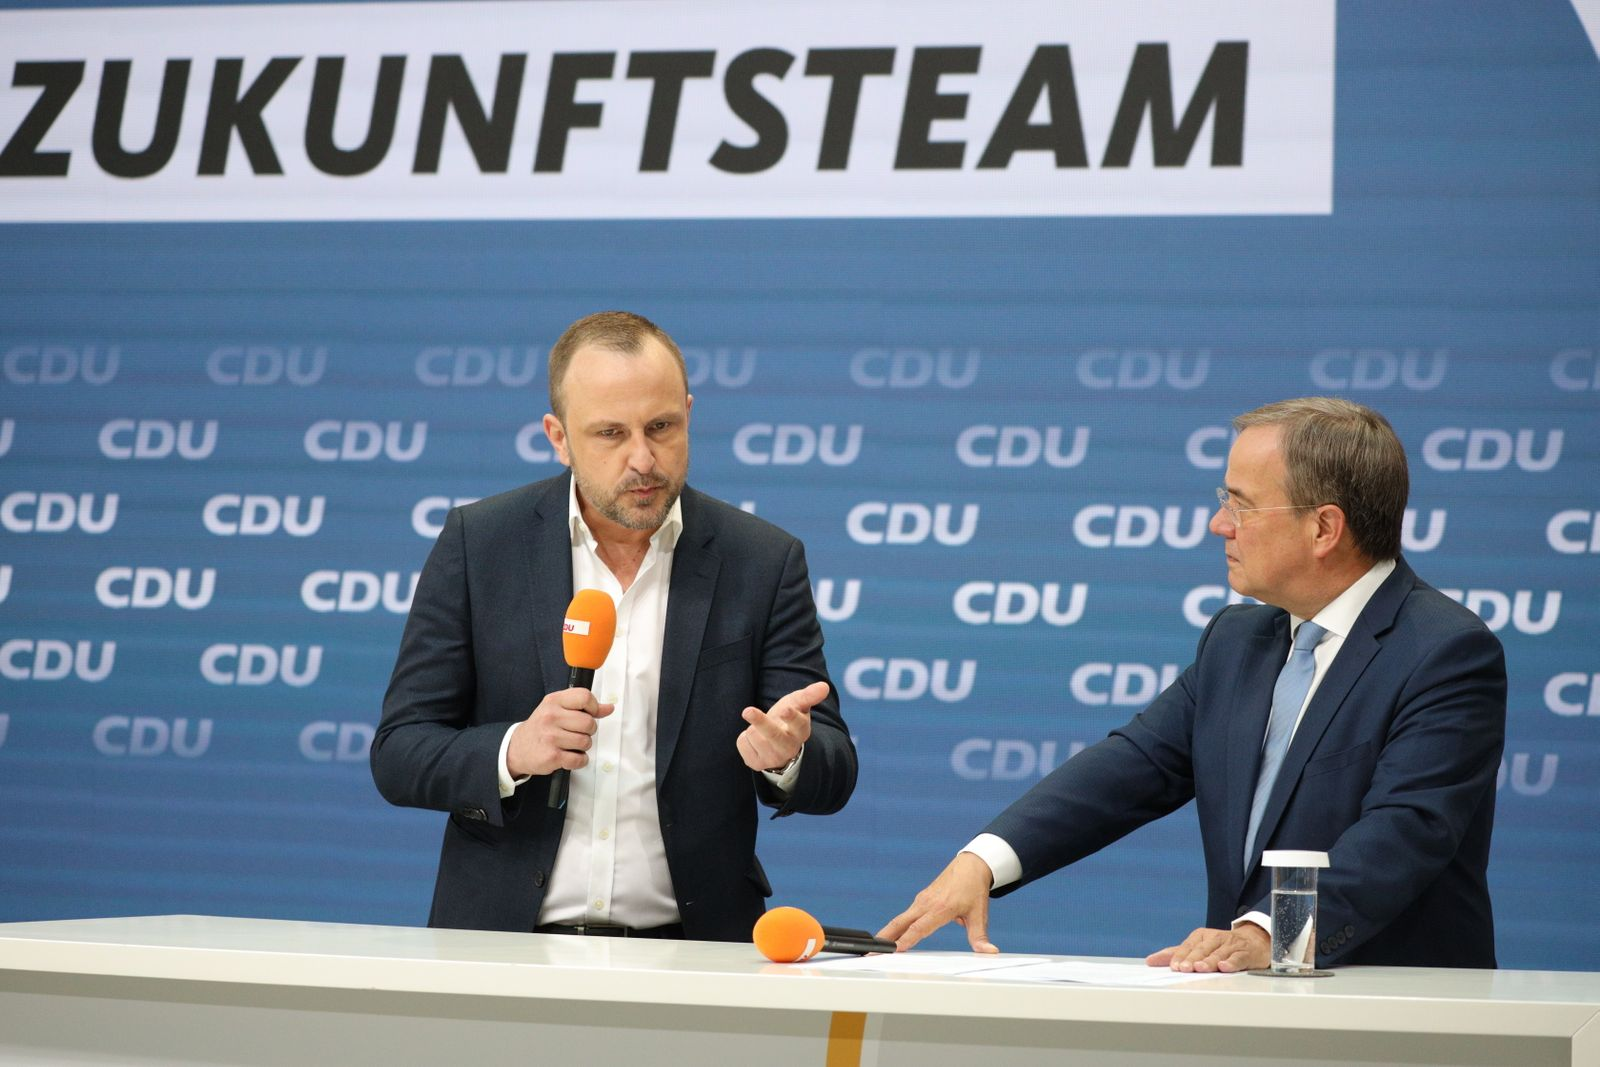 """CDU Presents """"Future Team"""" To Support Armin Laschet In Federal Elections"""